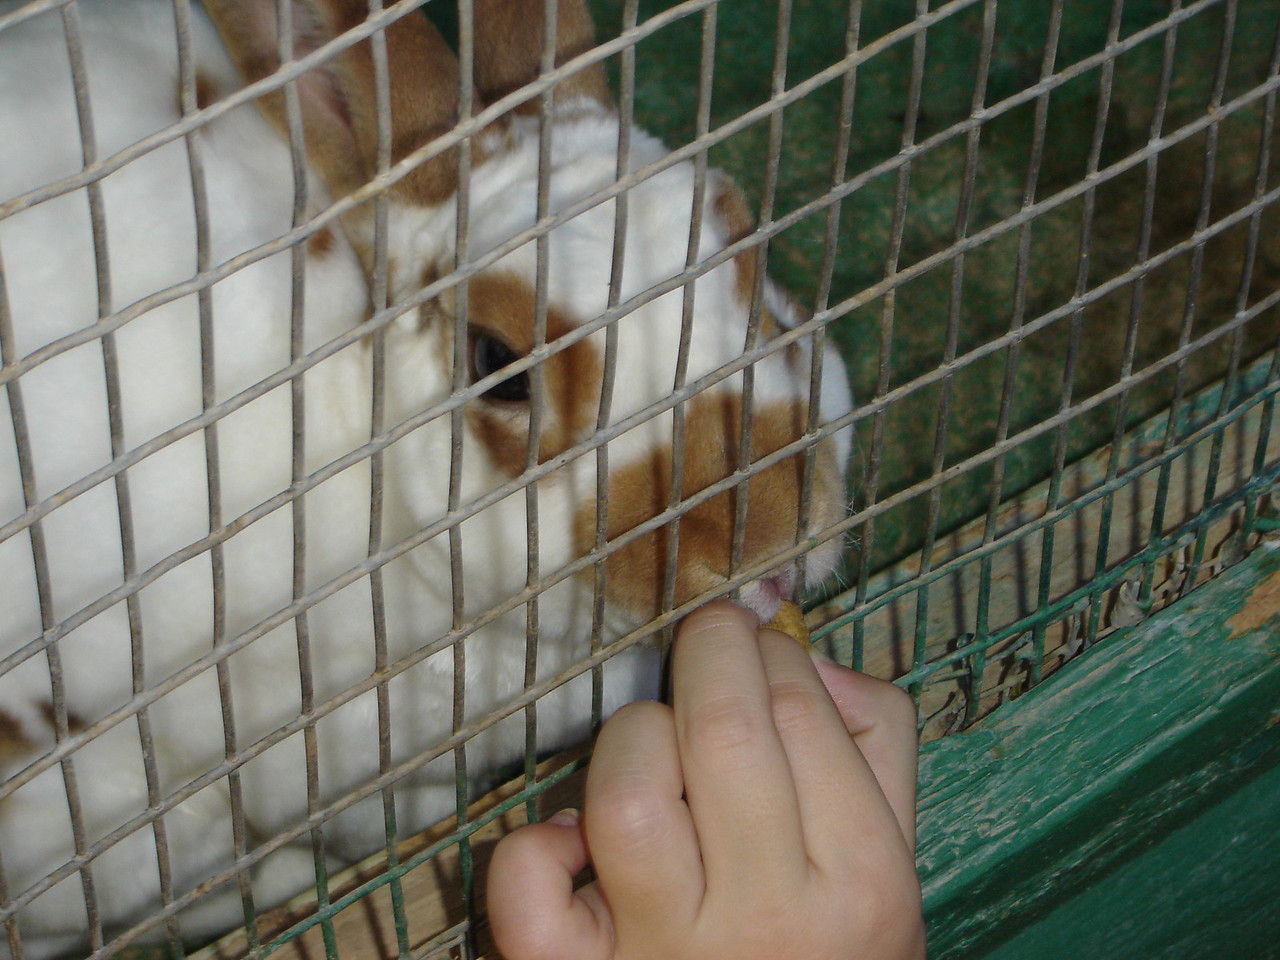 The petting zoo has a lot of rabbits. You can feed them and other small easily bred animals. Sometimes they sell them when the quantities get over-whelming.